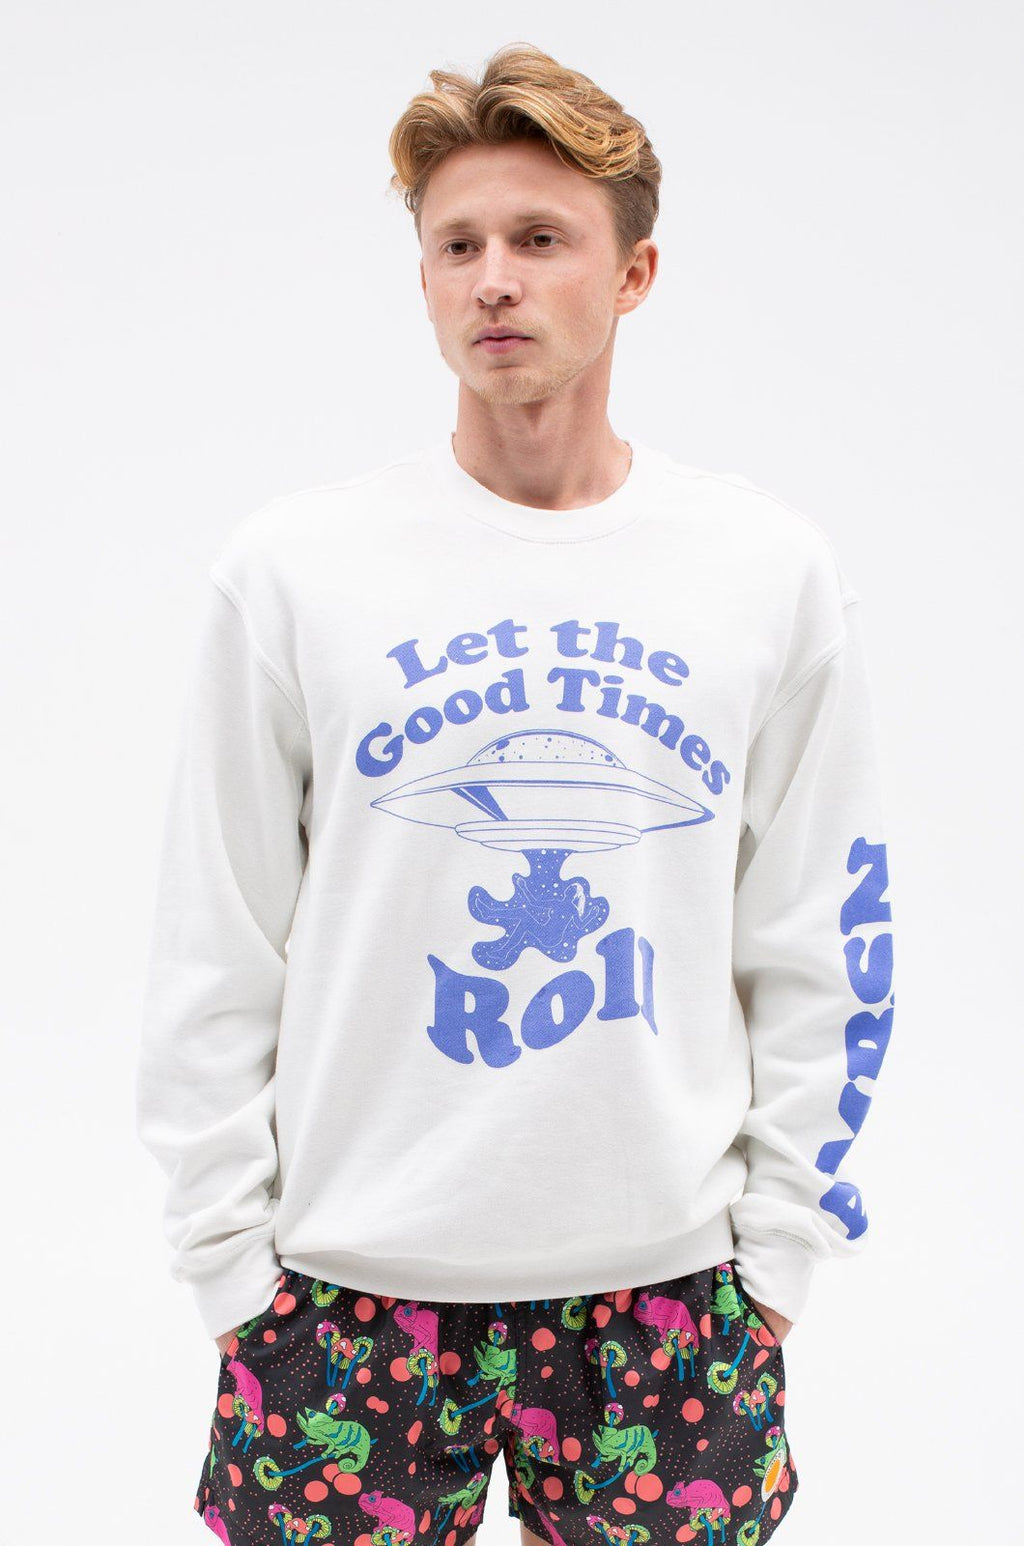 Good Times Crew Sweatshirts ambsn